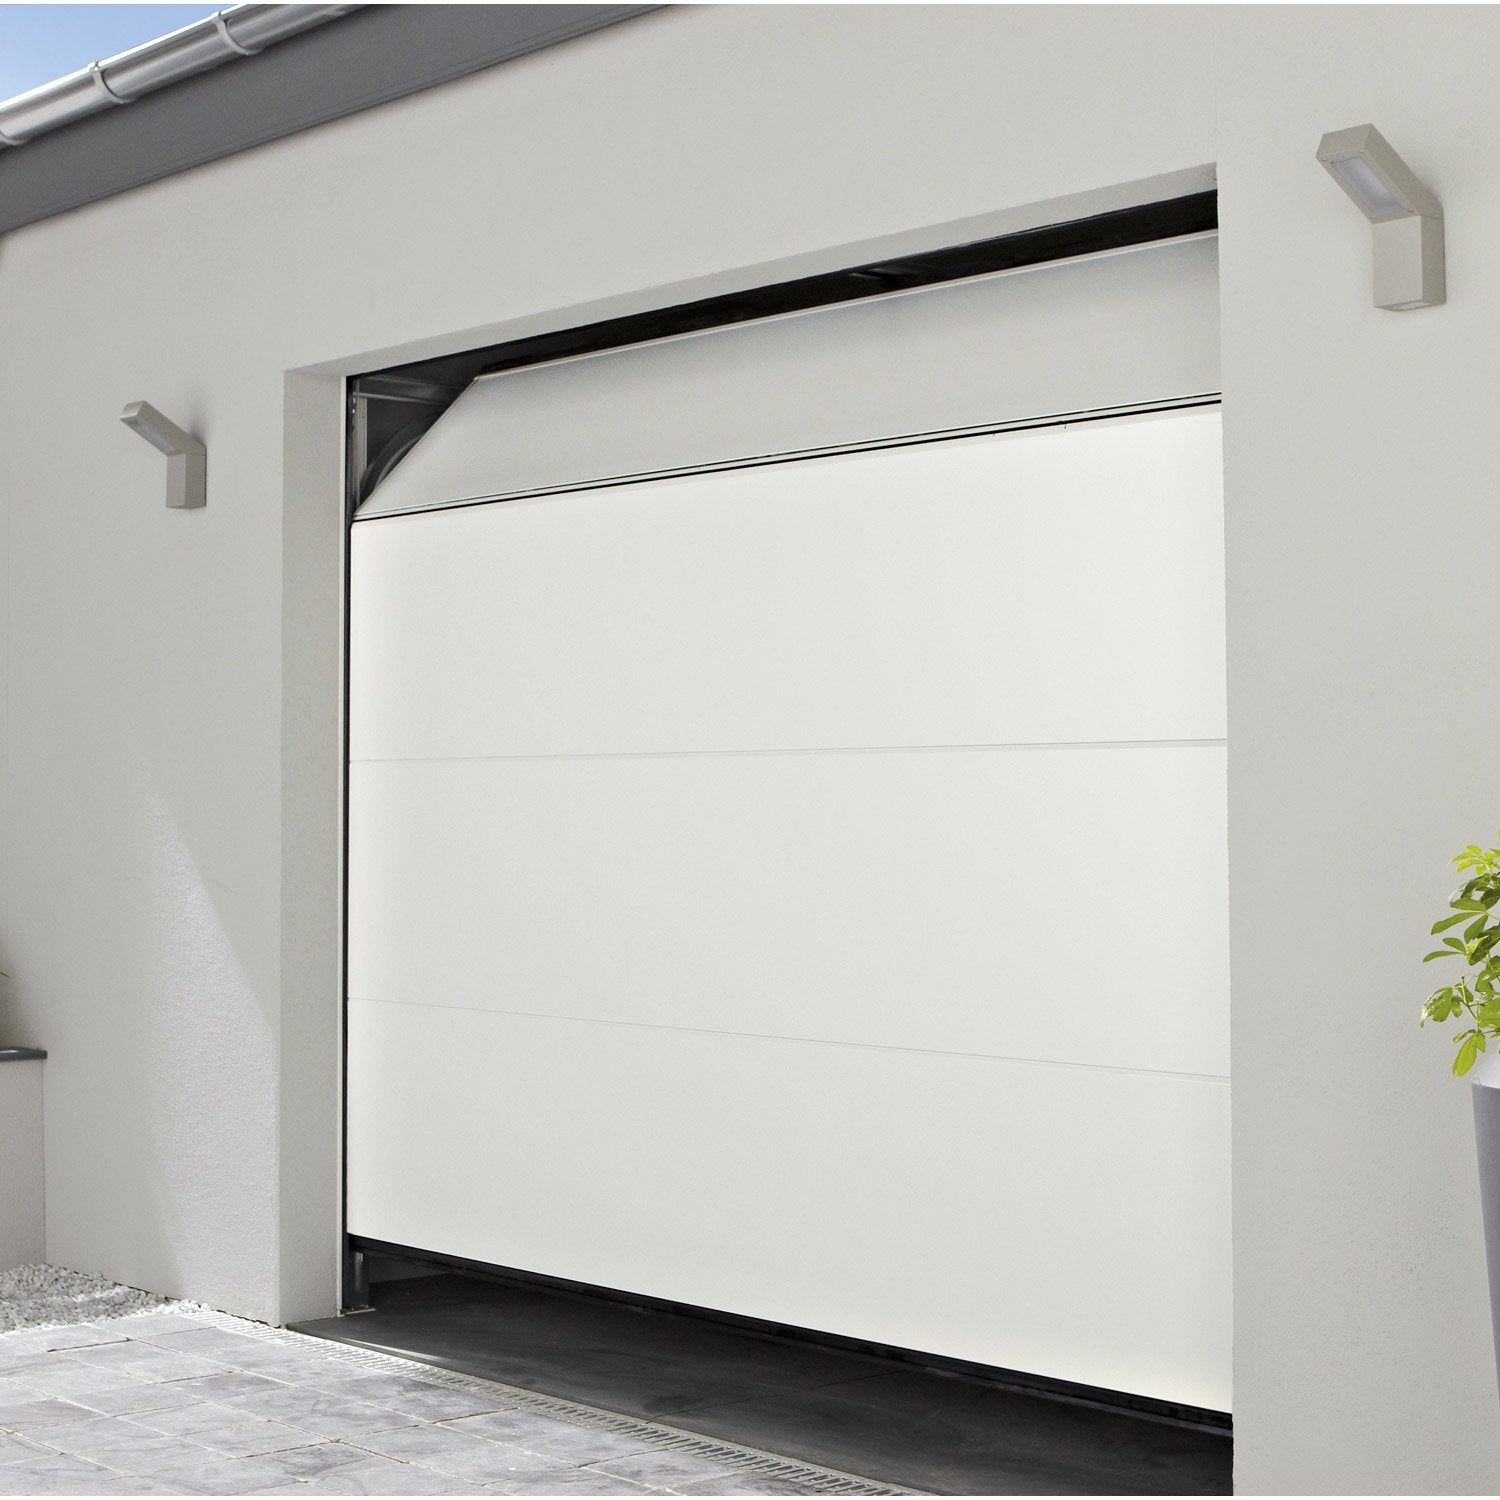 Porte de garage sectionelle motoris e chypre rainures for Porte de garage sectionnelle 220 x 200